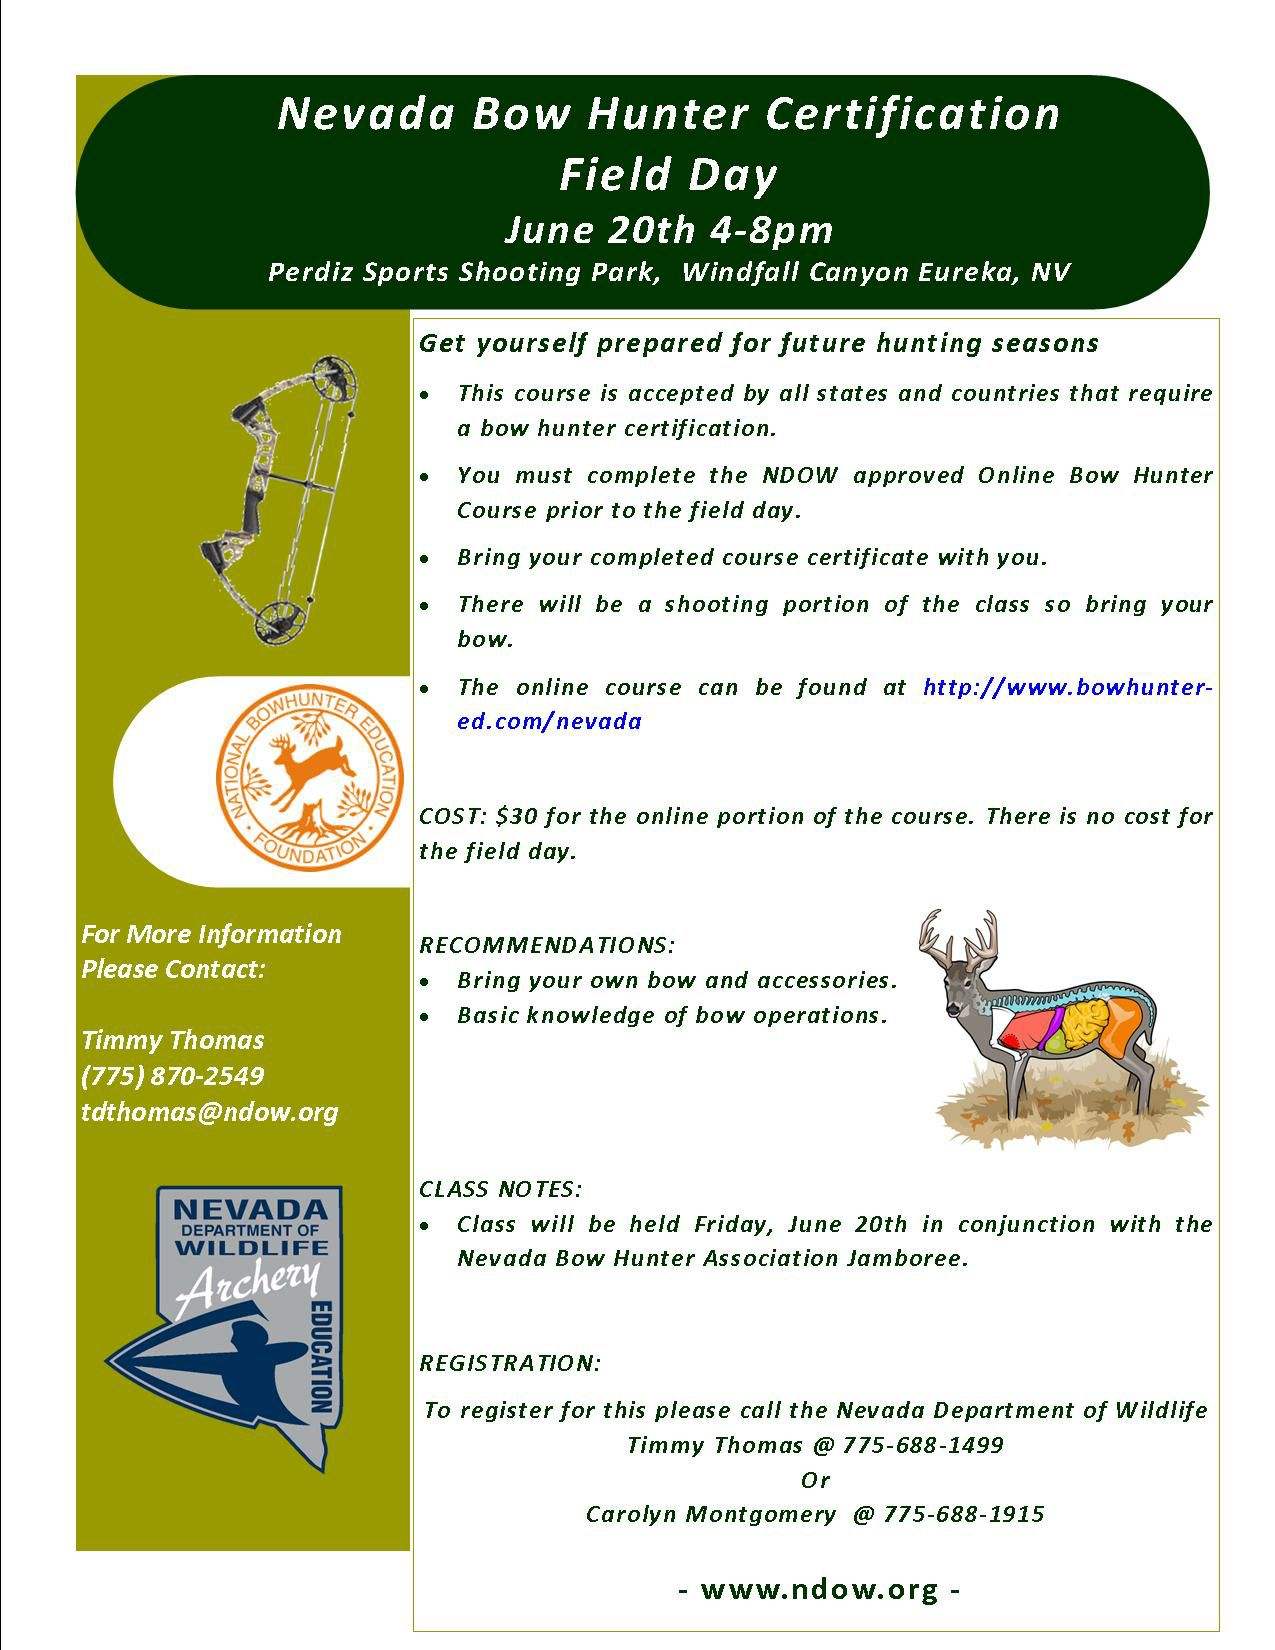 Nevada Bow Hunter Certification Field Day June 20th, 48pm